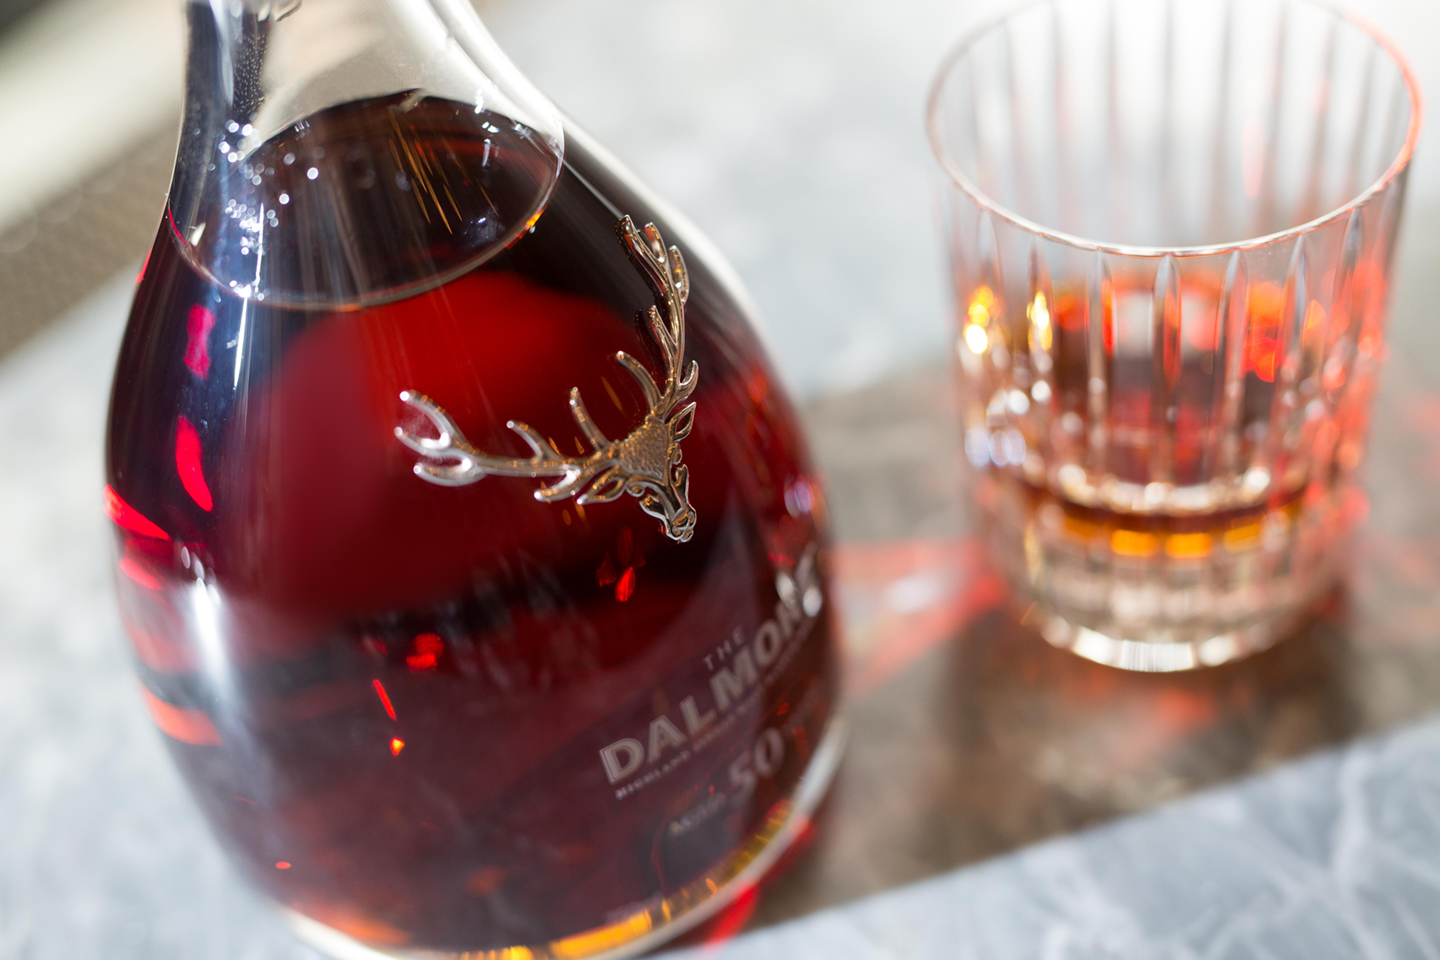 Dalmore 51, the distillery's first release of the new decade, could be yours for RM300,000